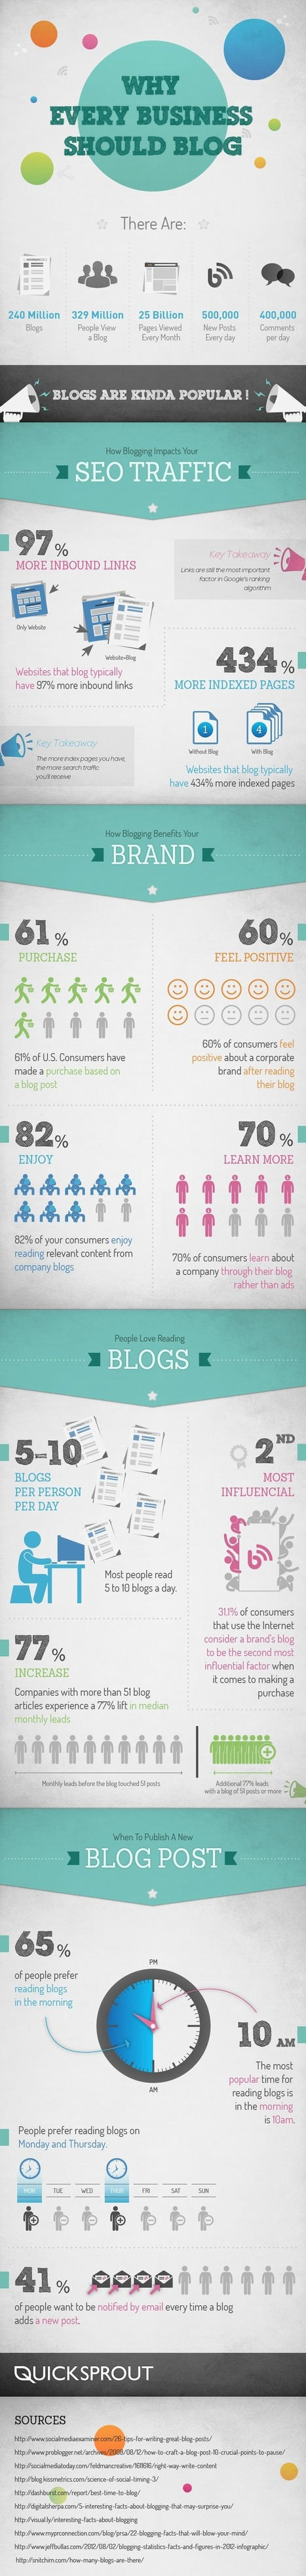 Infographic: Why Every Healthcare Organization Should Blog #hcsm | Digital Healthcare | Scoop.it